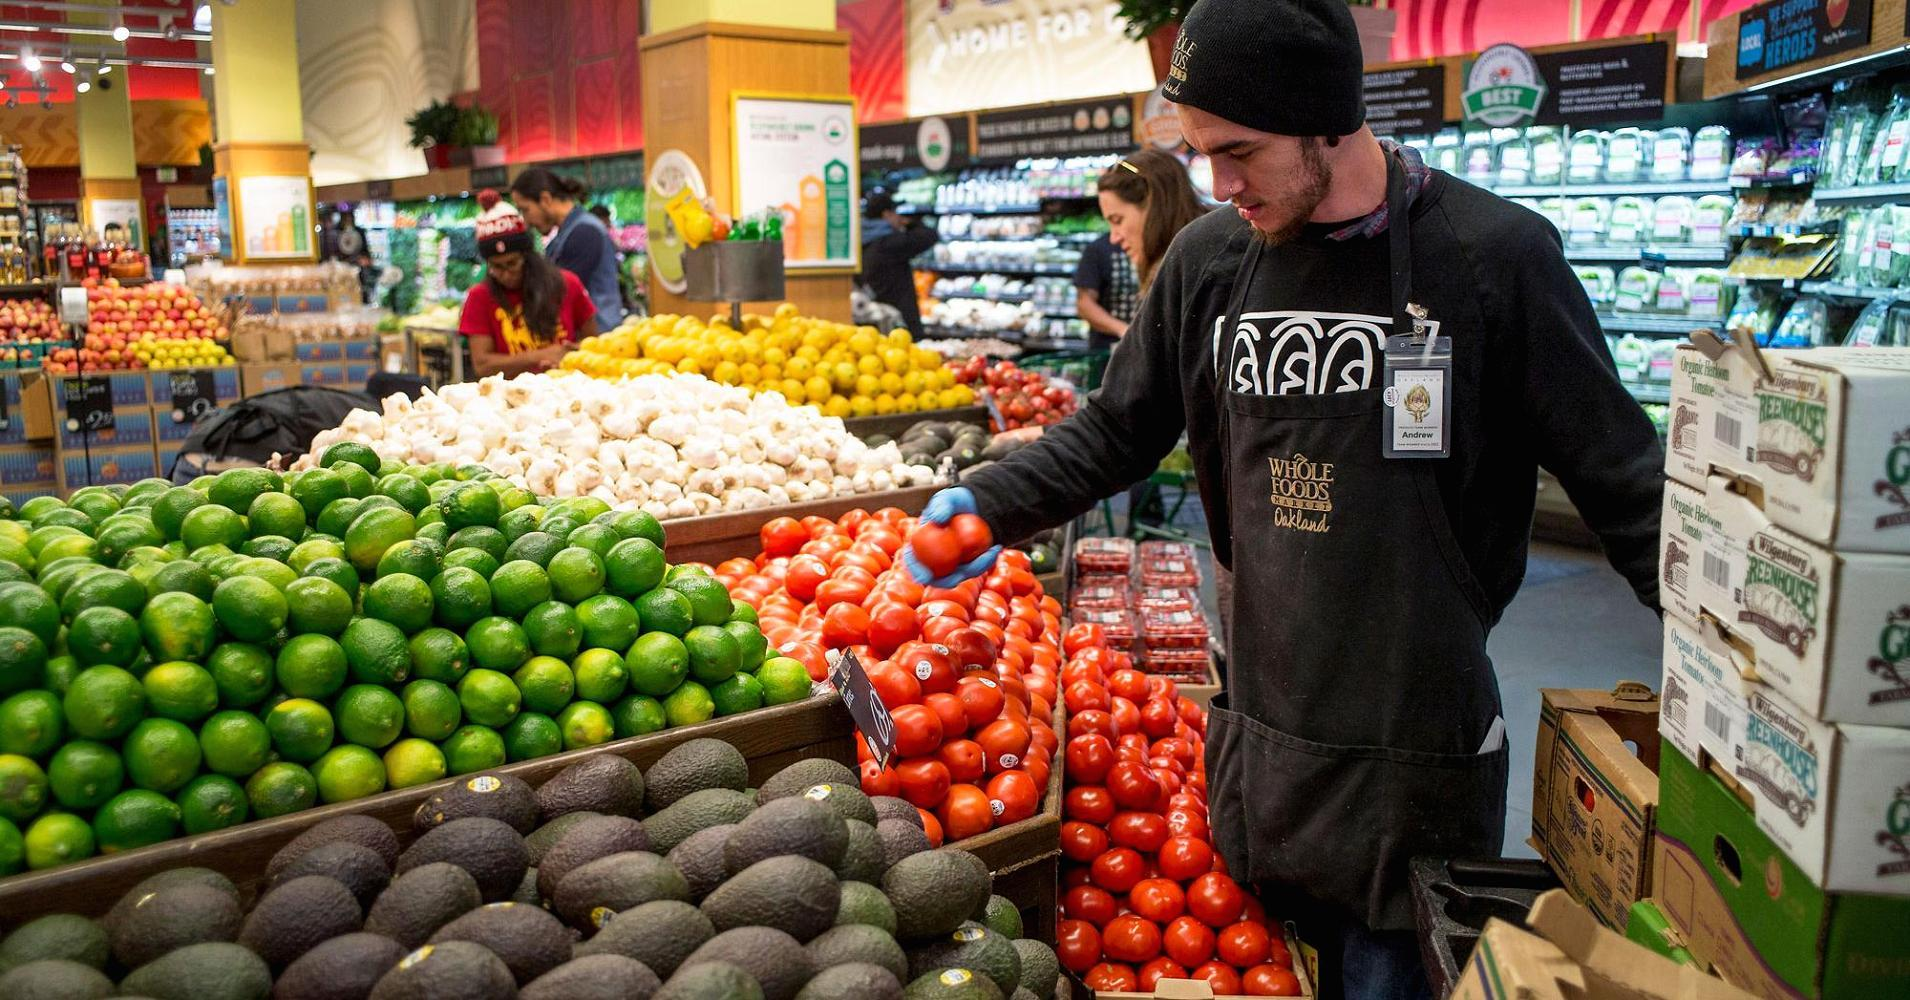 the grocery store industry performance is based The grocery store industry is made up of two sectors: supermarkets and convenience stores that do not sell gas stores in the grocery store industry primarily sell a range of food items, but may also sell some nonfood goods.